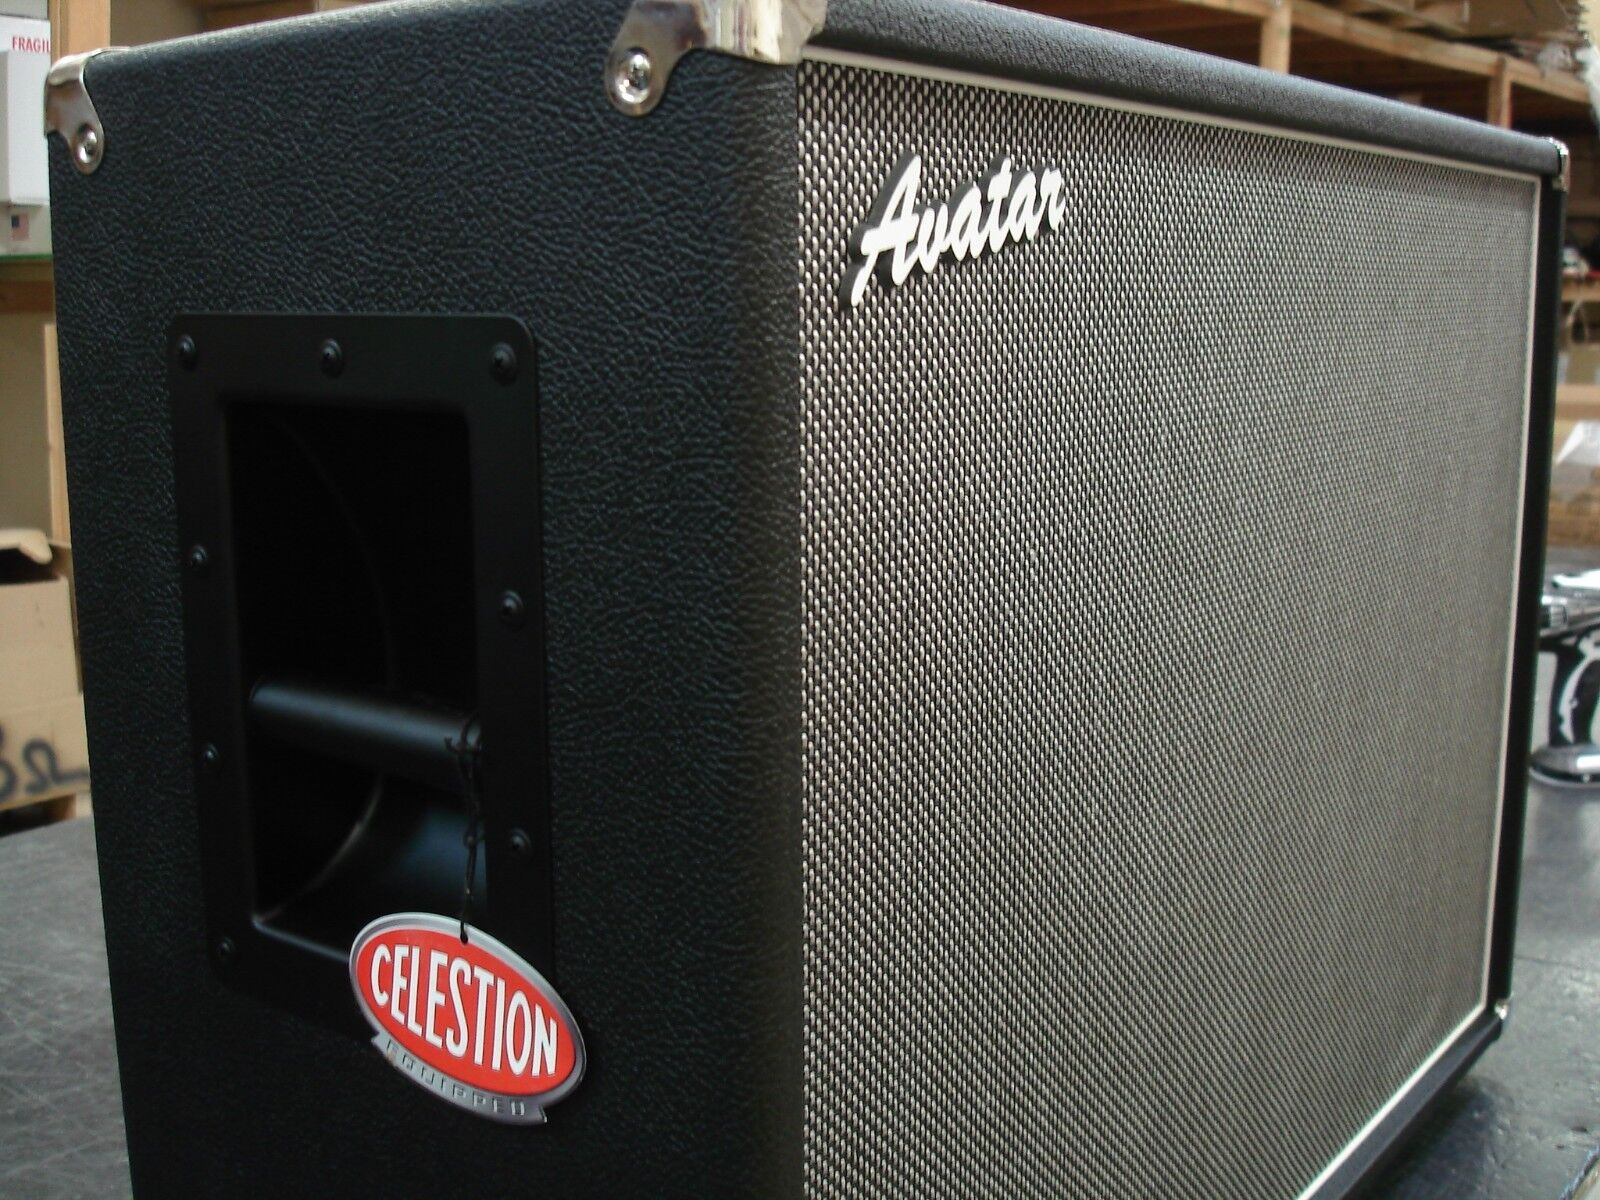 Best Guitar Amp Cabinets New Avatar 212 Celestion Uk Alnico Blues Boutique Guitar Amp